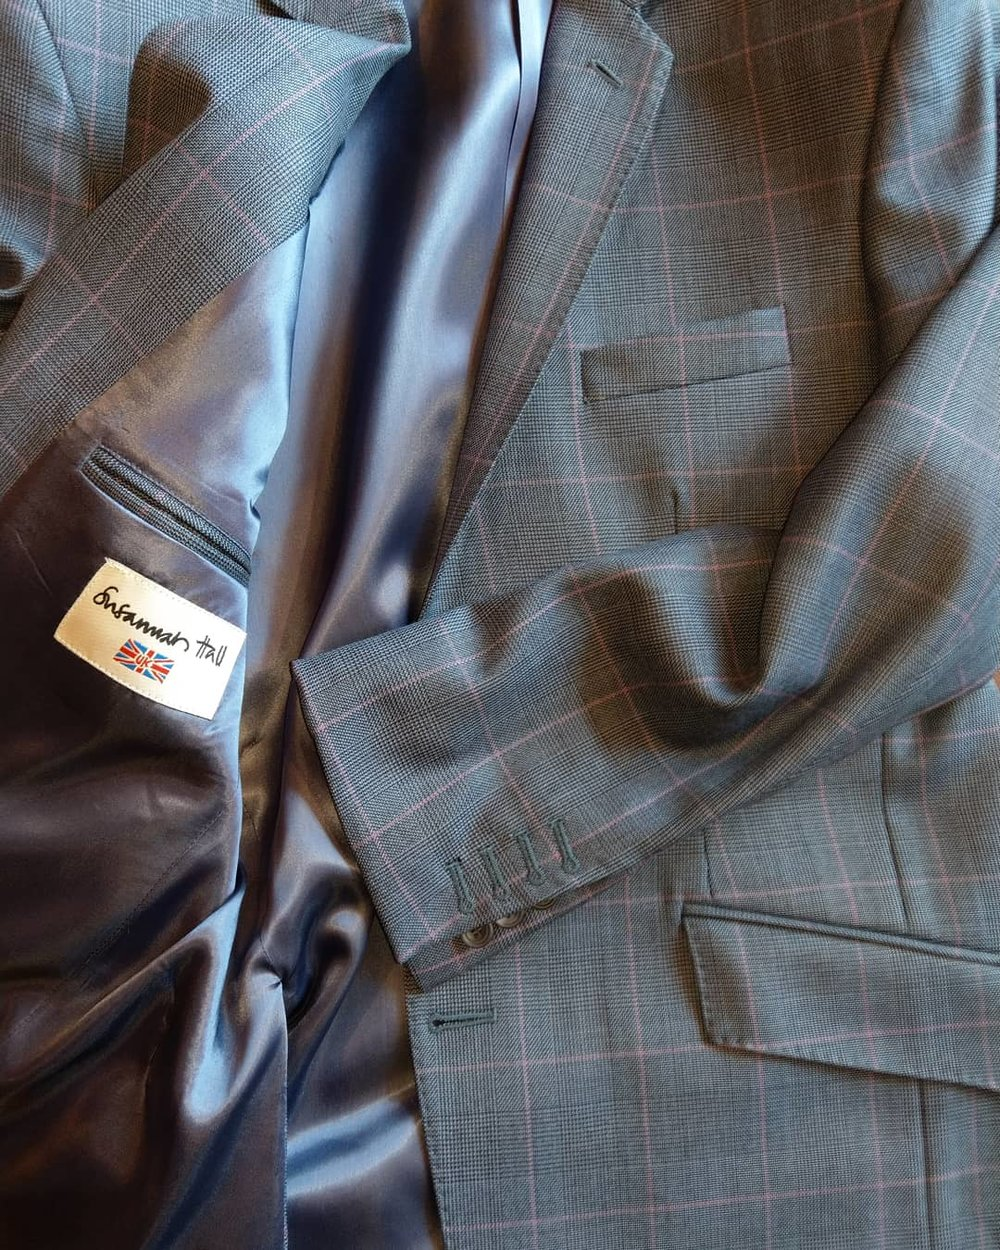 susannah-hall-bepsoke-tailor-suit-prince-wales-check-holland-sherry-uk-made-britain.jpg